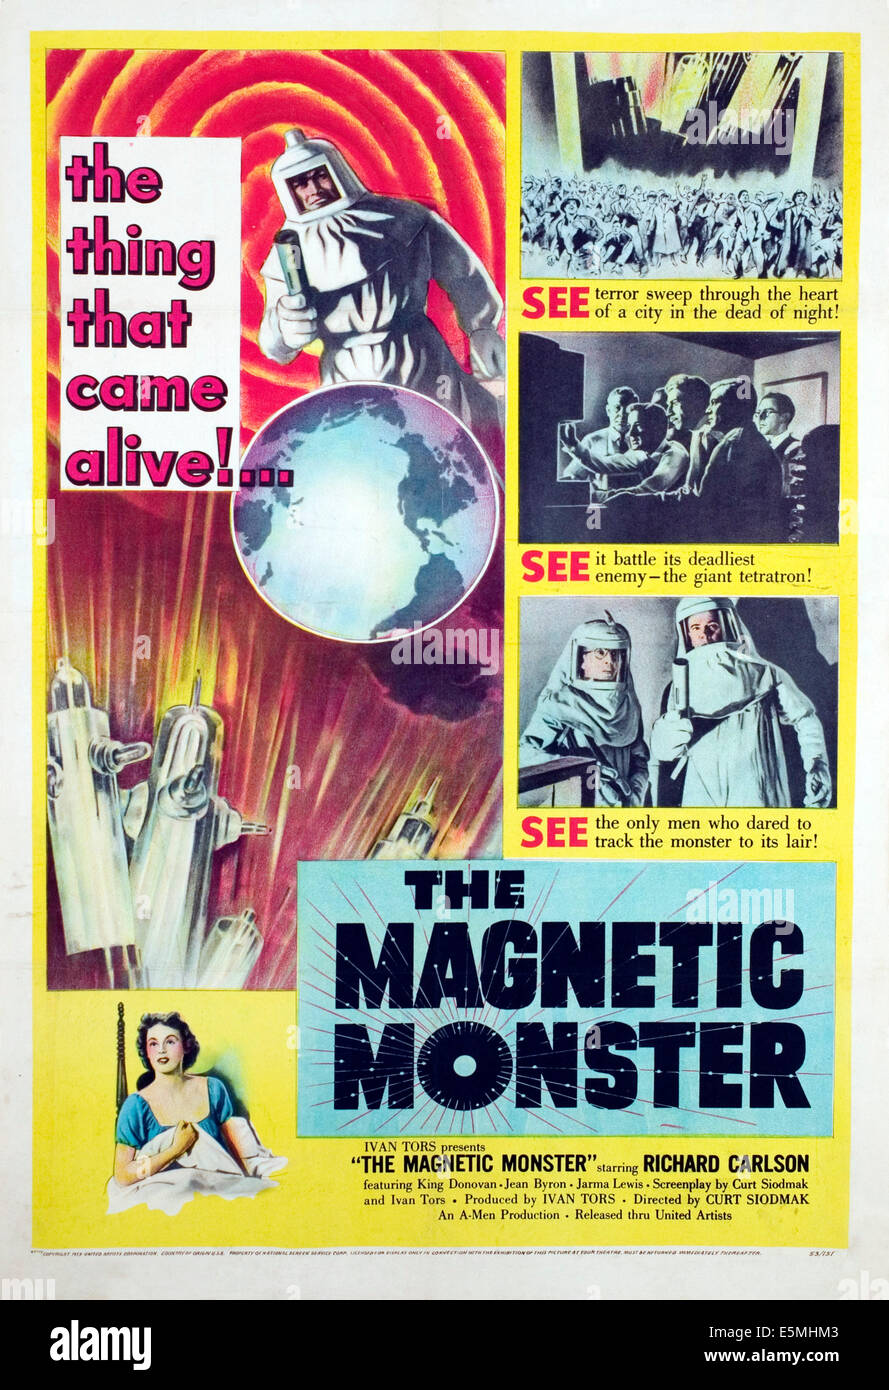 THE MAGNETIC MONSTER, 1953. - Stock Image